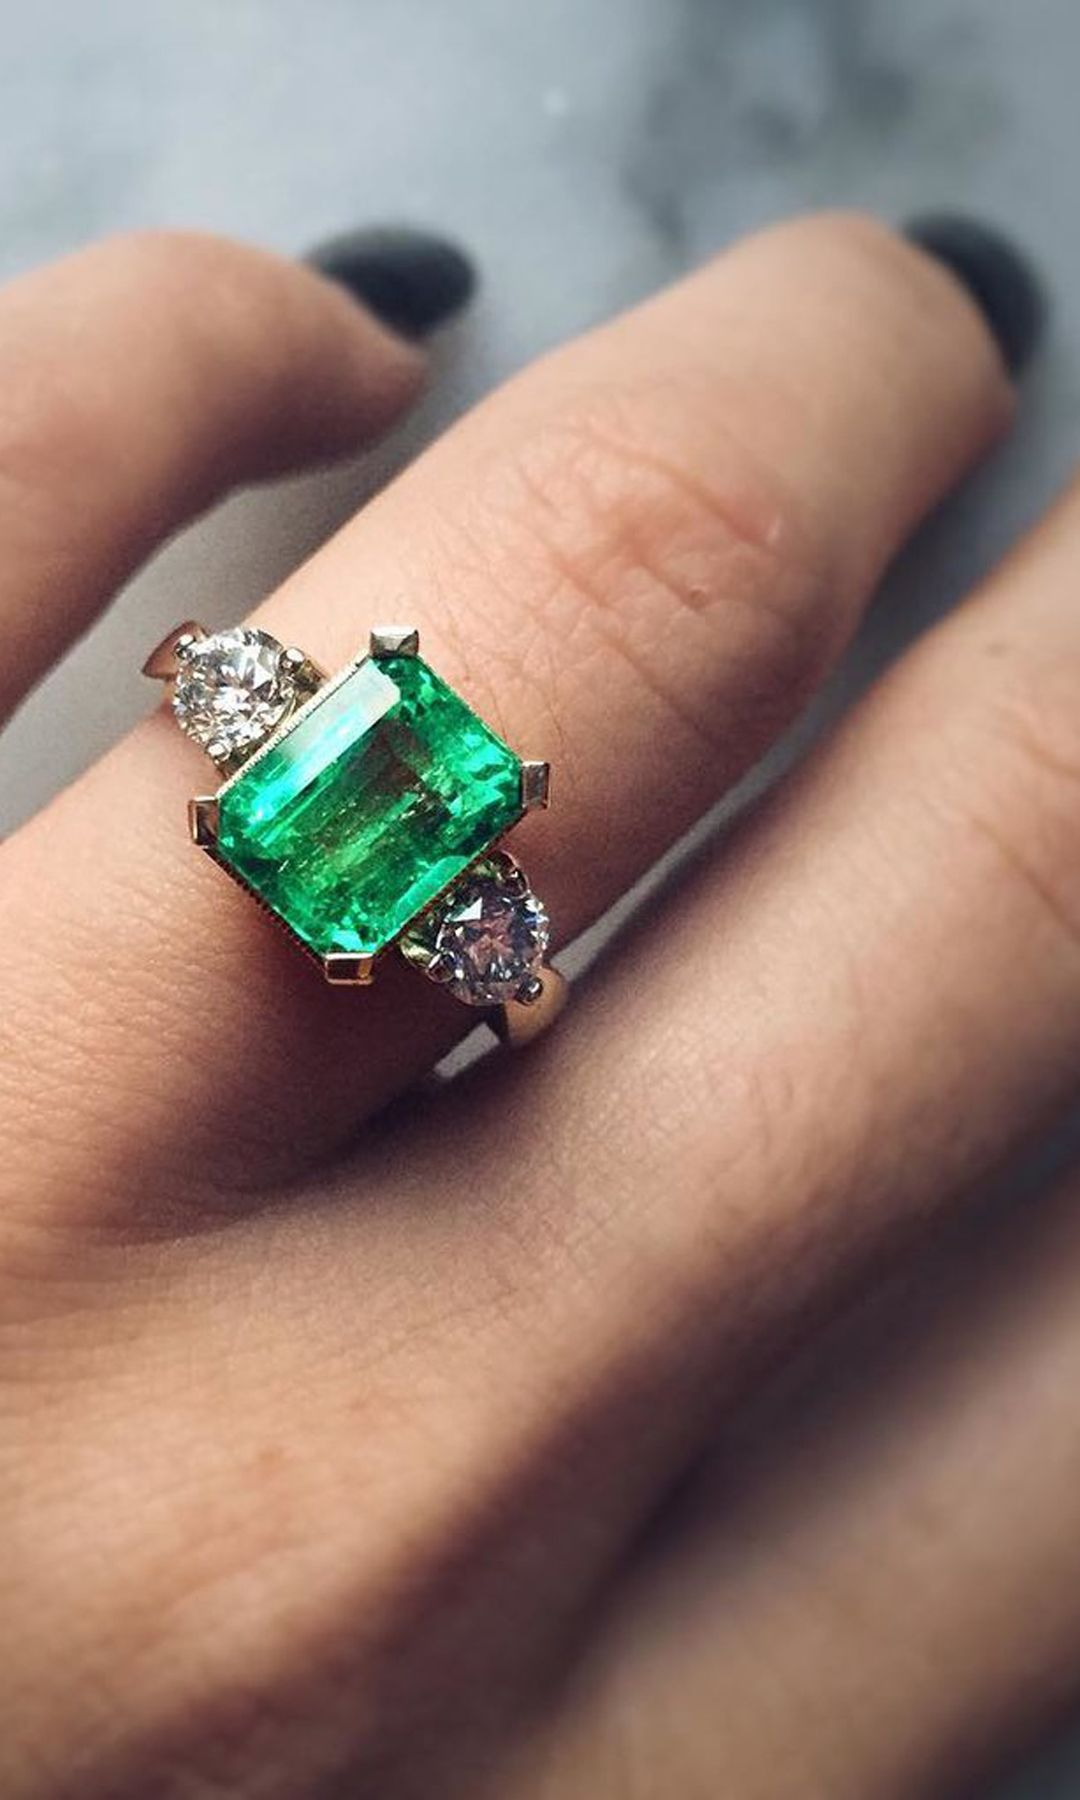 diamond jewellery and emerald ct graff a high jewels cut featuring ring collections